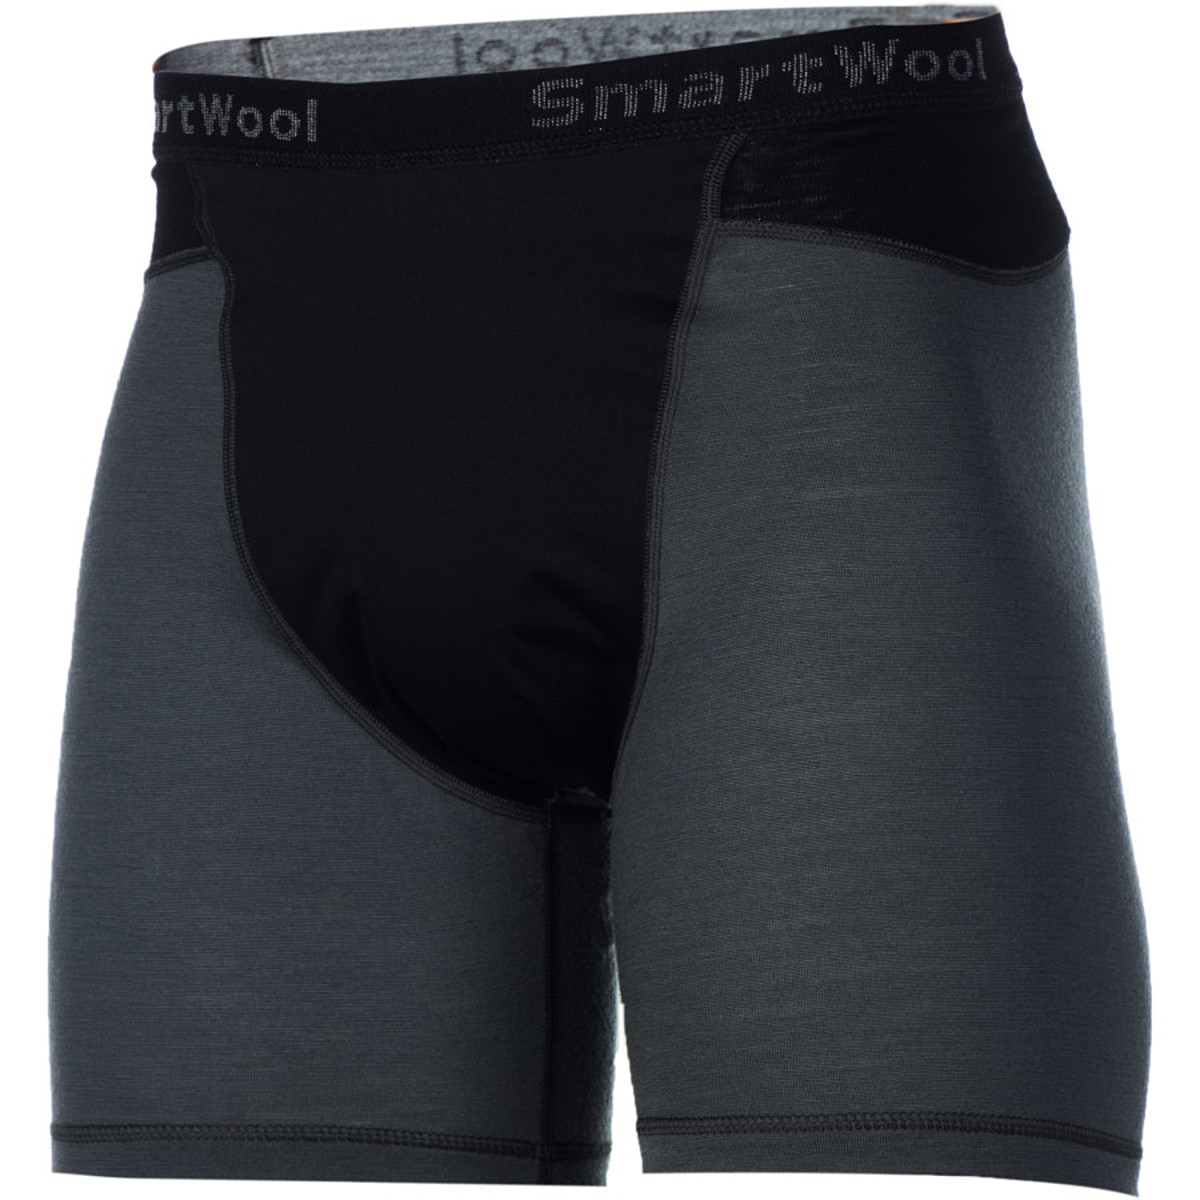 photo: Smartwool Lightweight Wind Boxer Briefs boxers, briefs, bikini